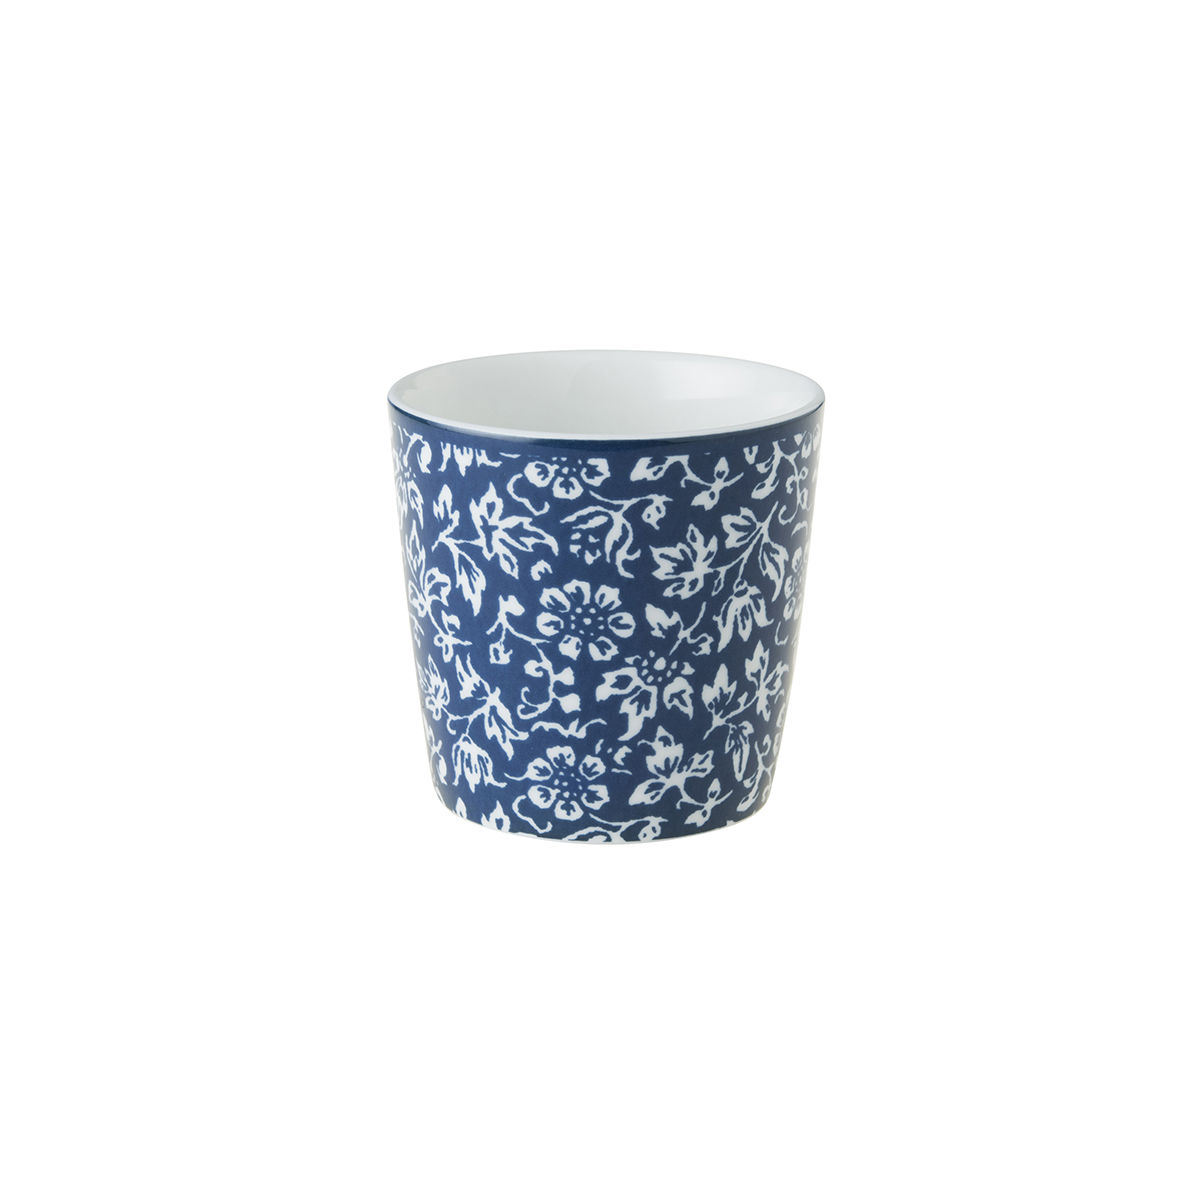 Laura Ashley Mug 7.5 oz Sweet Allysum - product images  of